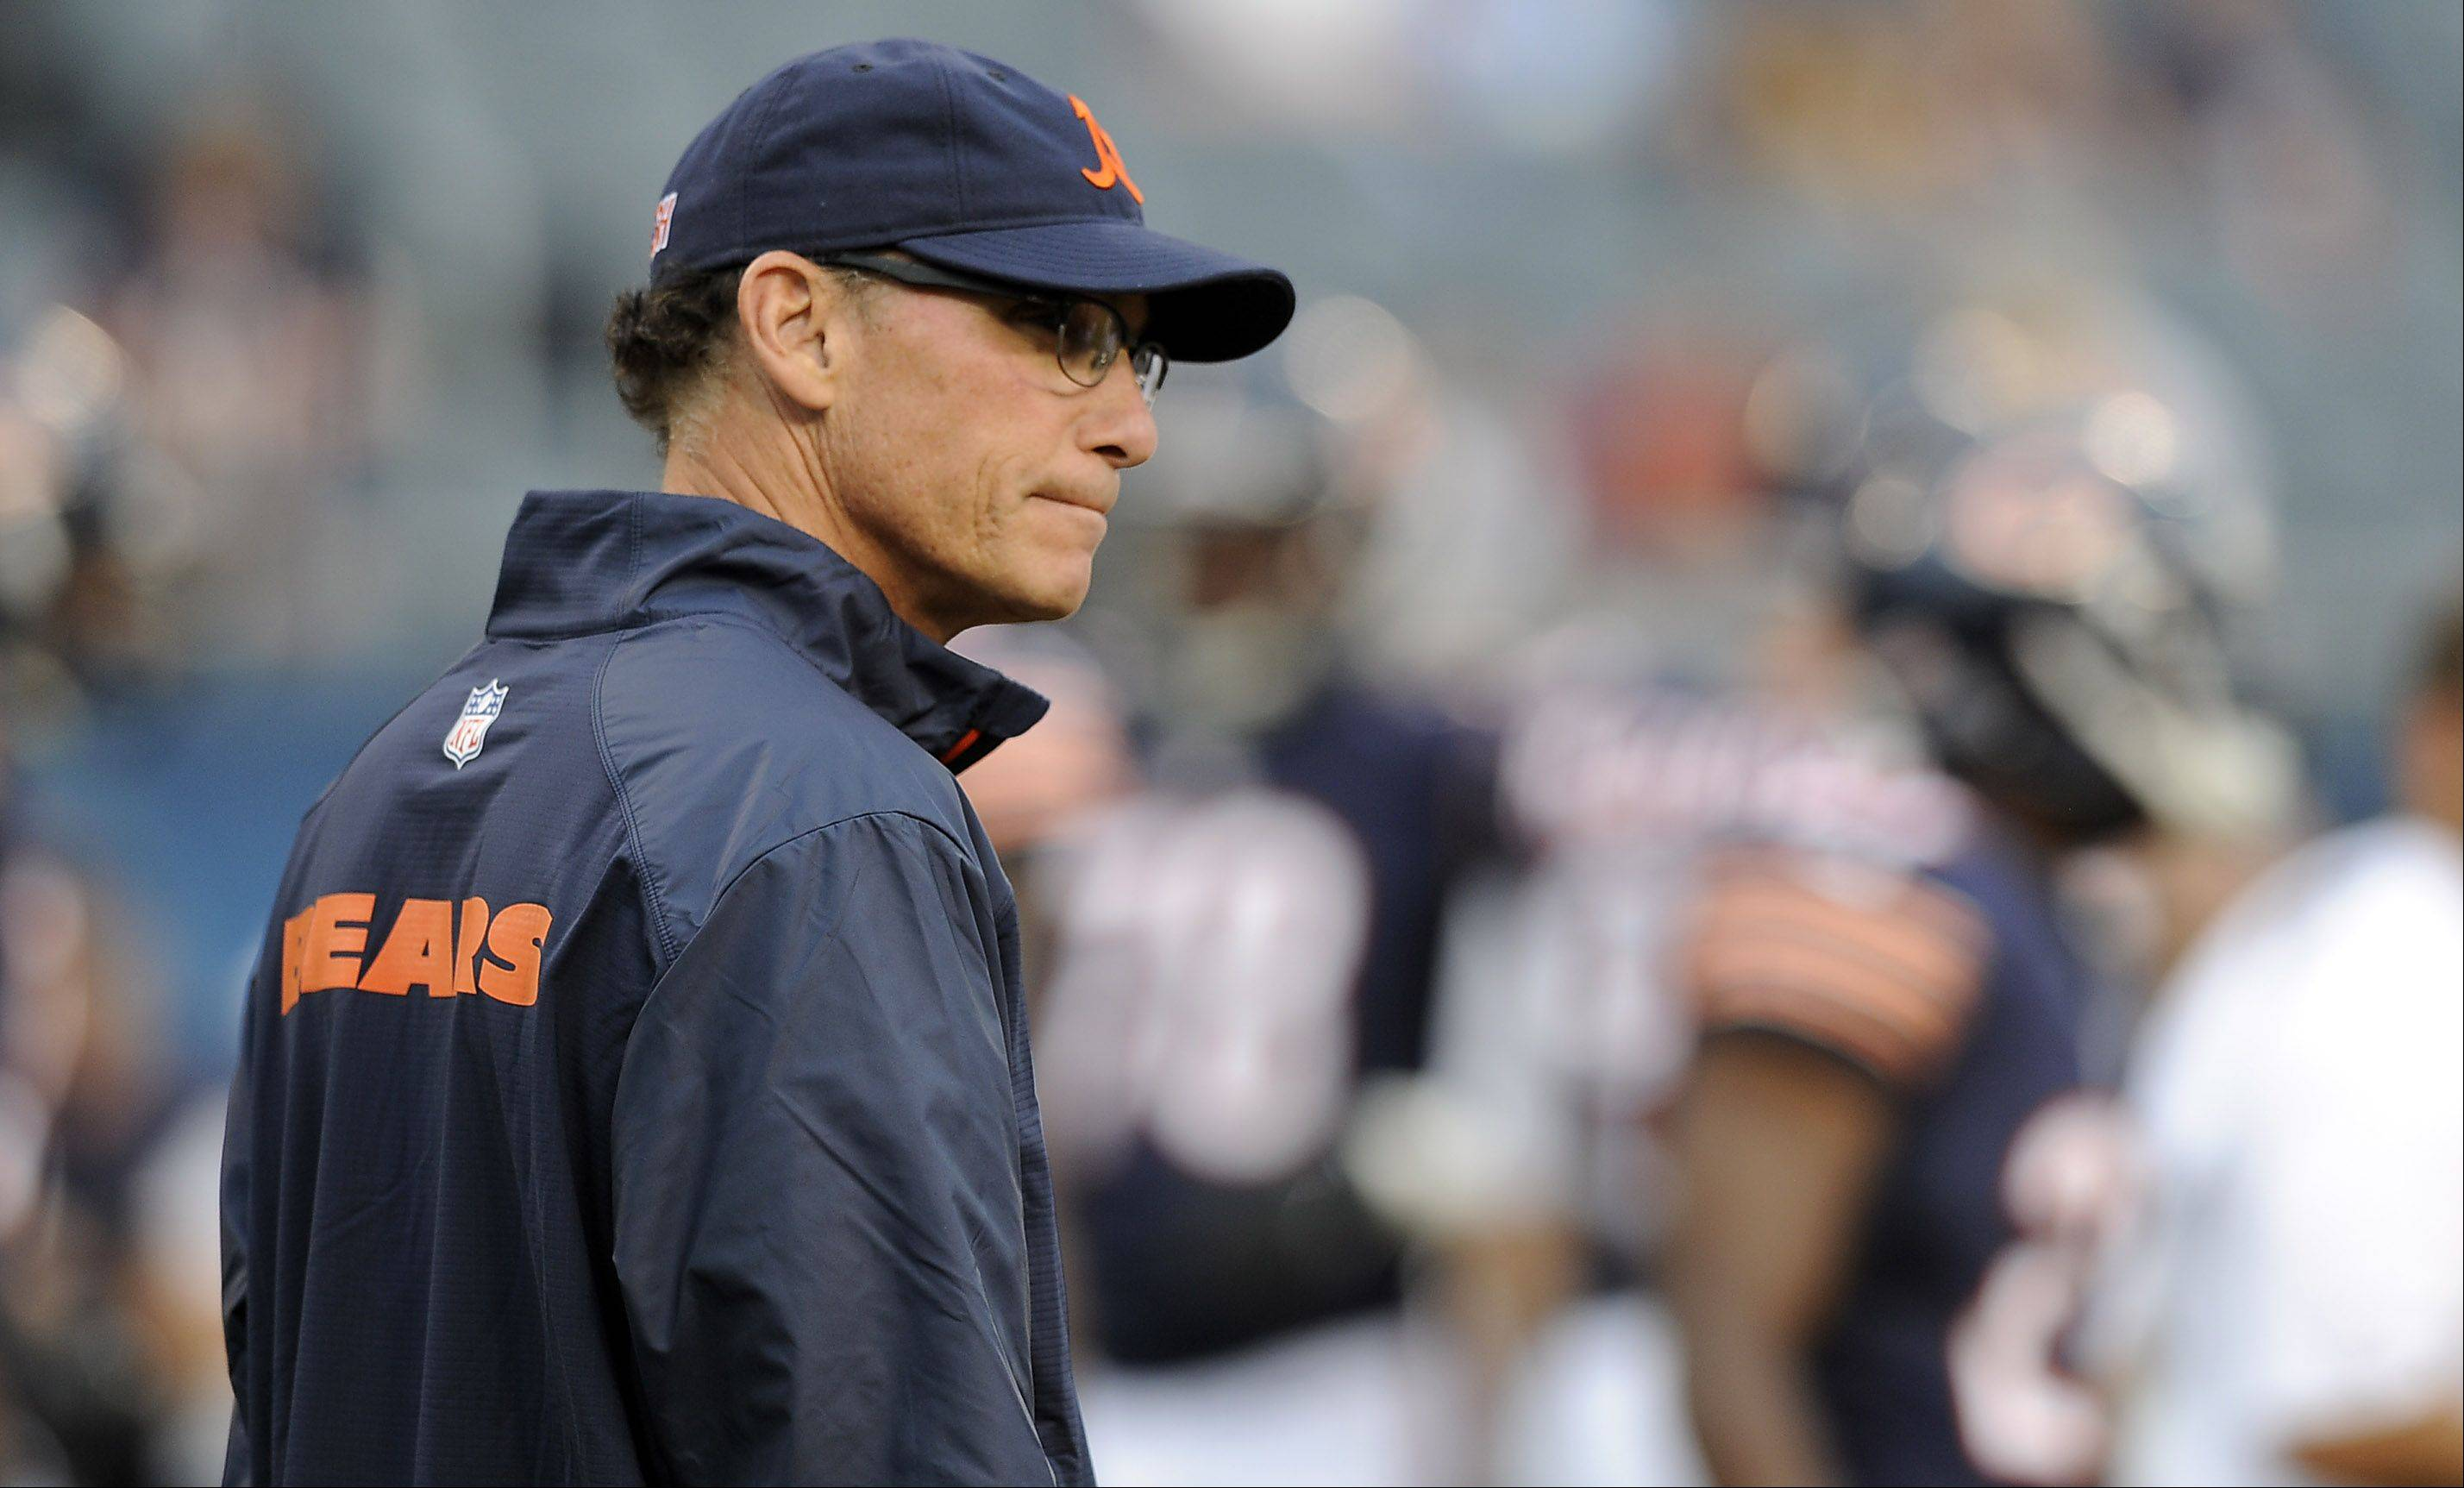 While new head coach Marc Trestman has a history of developing high-octane passing attacks and raising the game of the quarterbacks who play for him, the Bears have a much different history when it comes to offense.